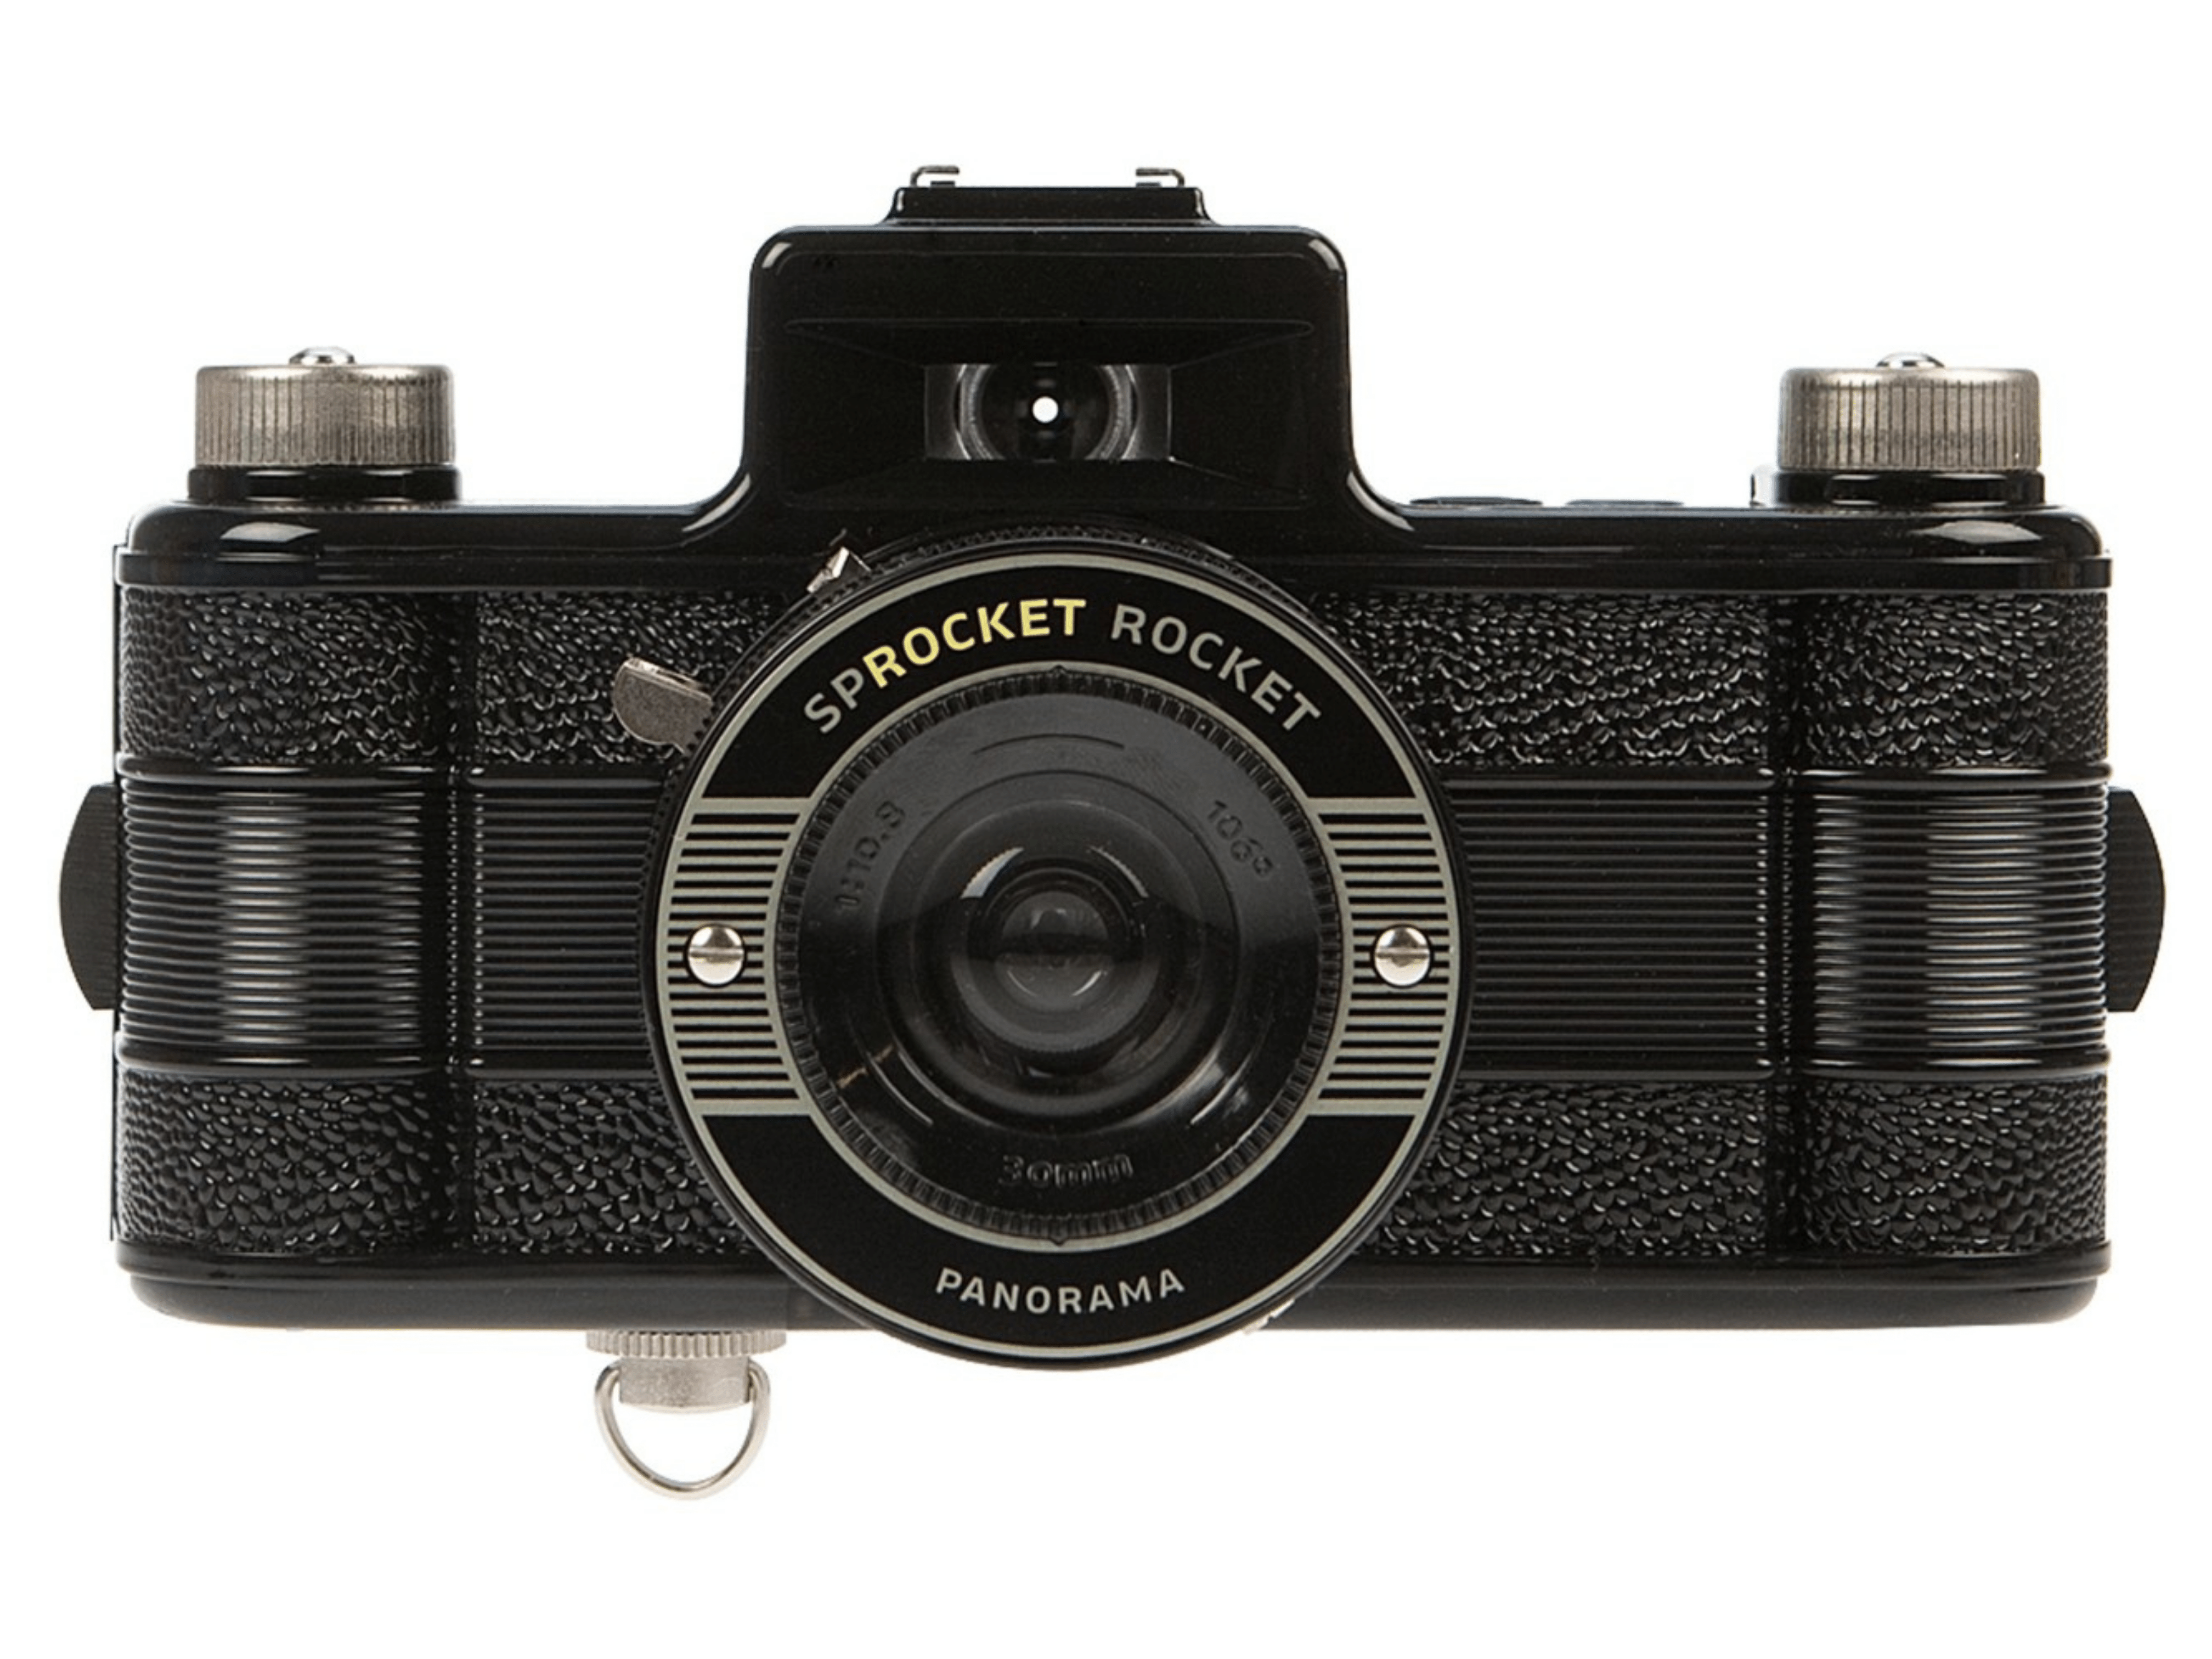 Lomography Sprocket Rocket Black - 35mm Film Camera